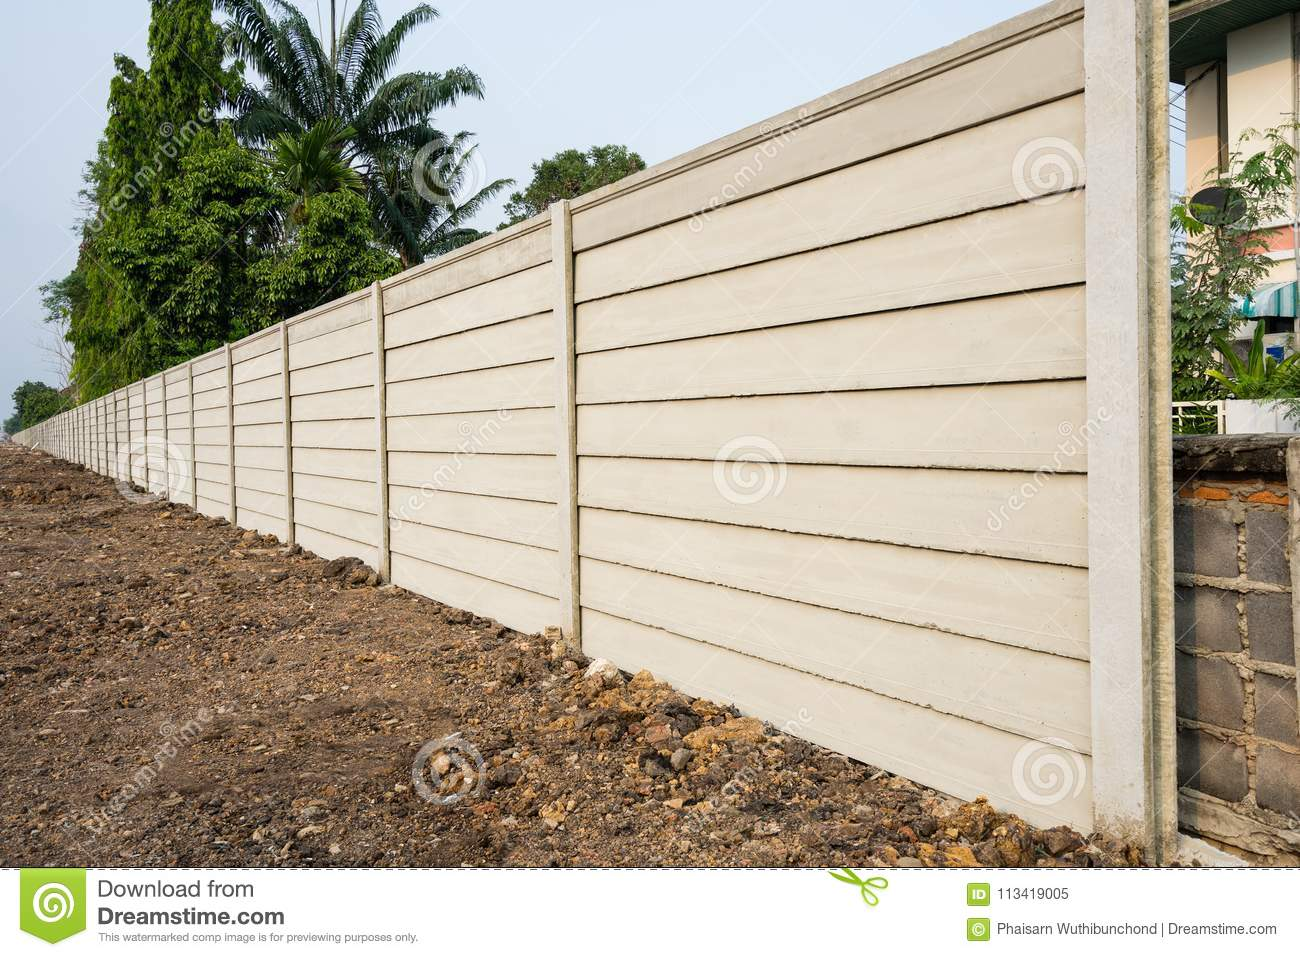 Perspective view of precast panel concrete wall on fresh ground floor, prefabricated cement compound wall over trees background